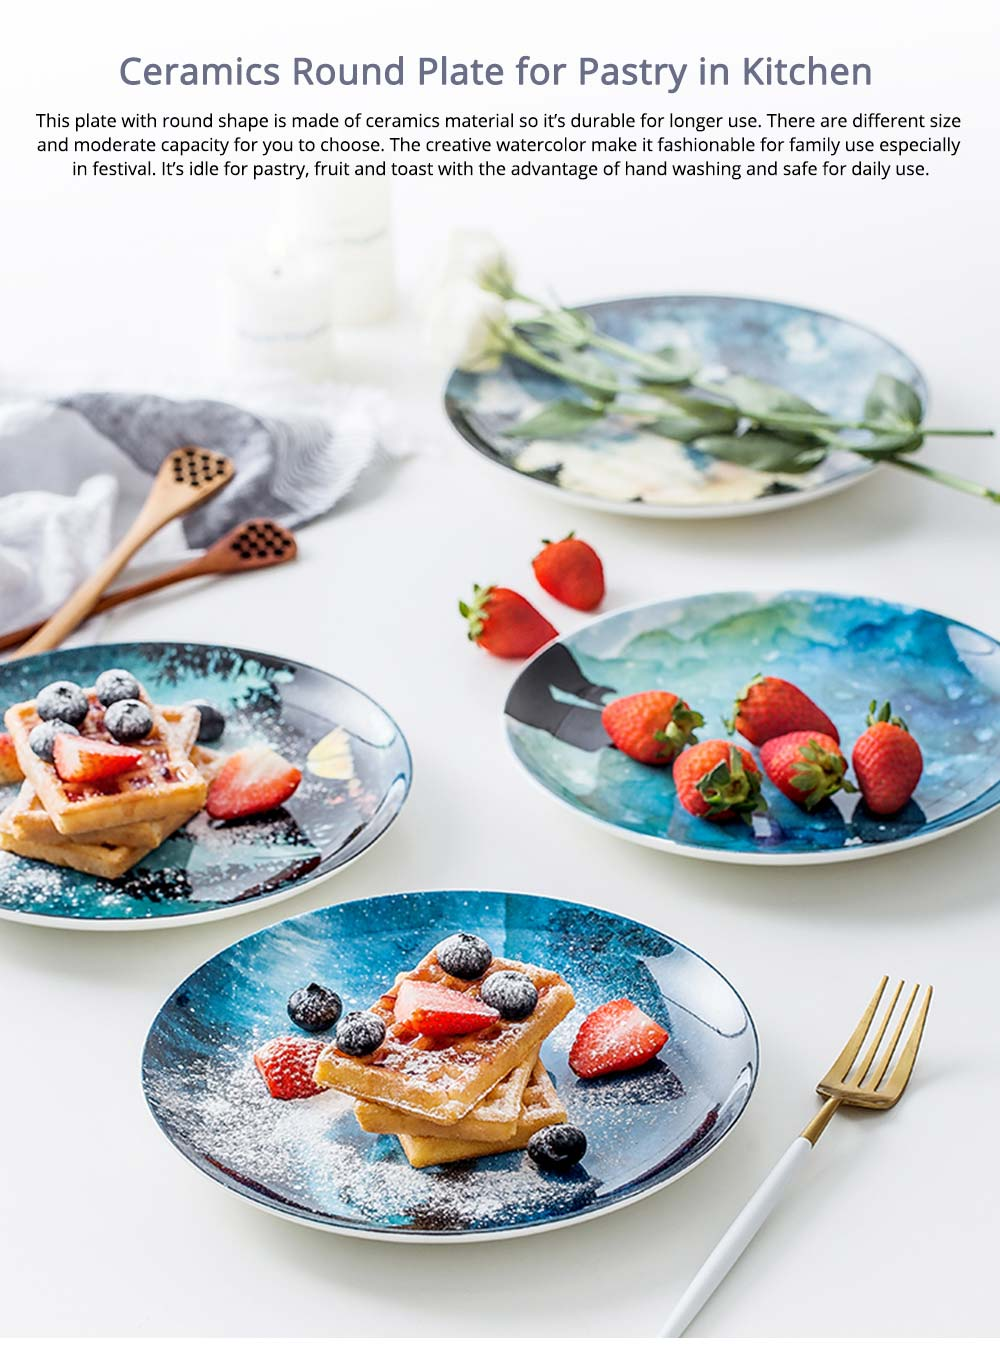 Watercolor Round Ceramic Dinner Plates For Pastry With Different Fresh Style 0